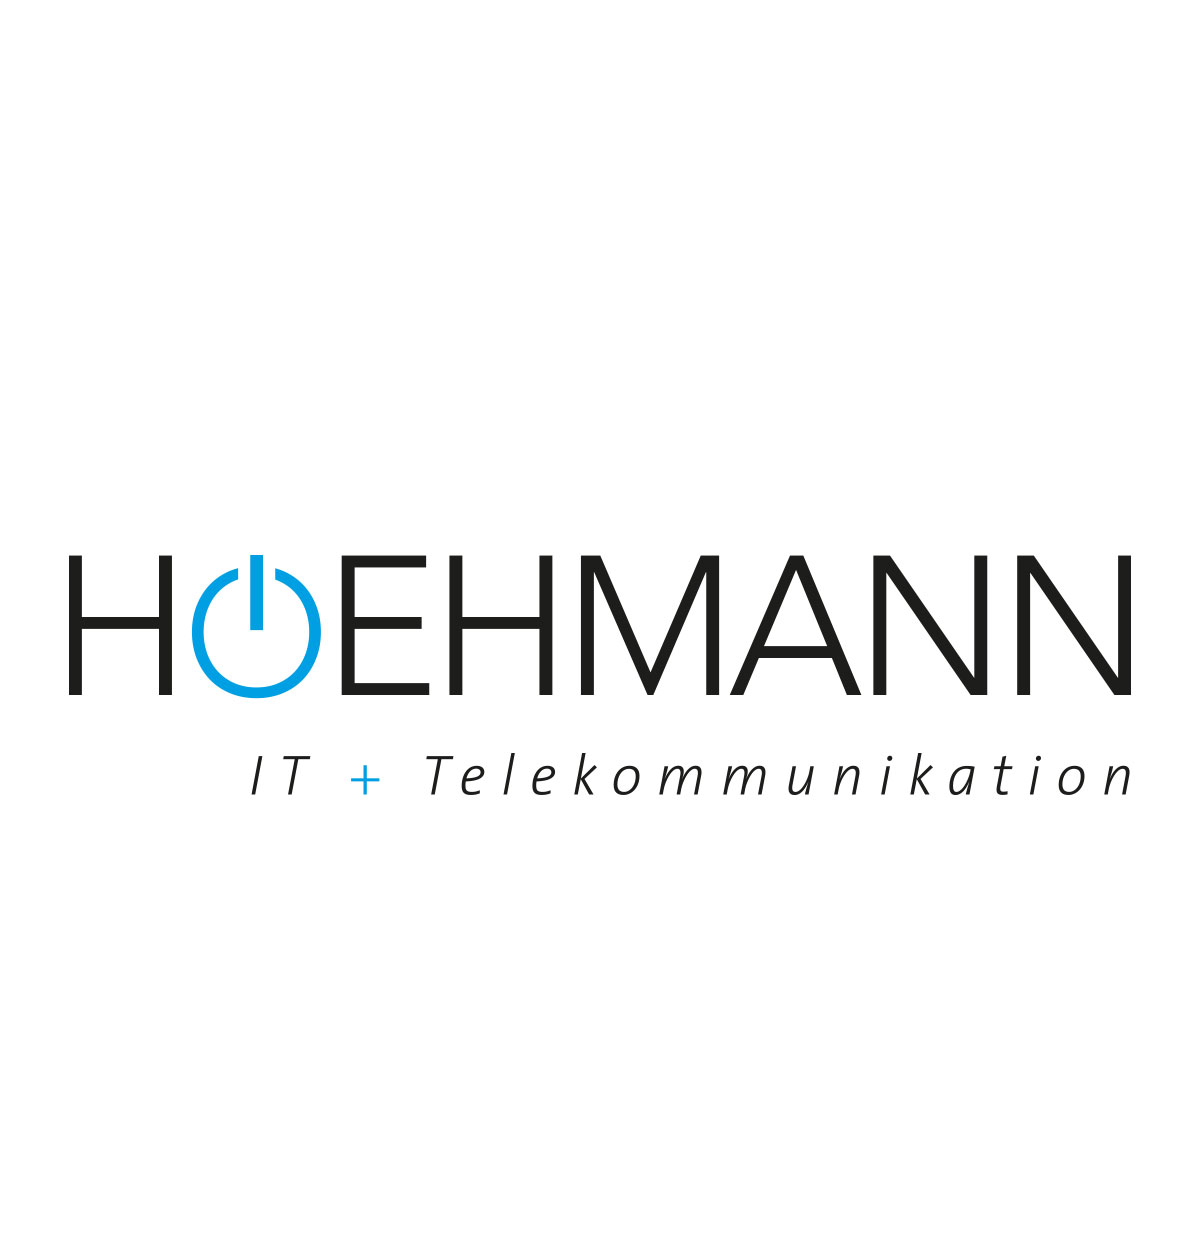 Hoemann IT + Telekommunikation